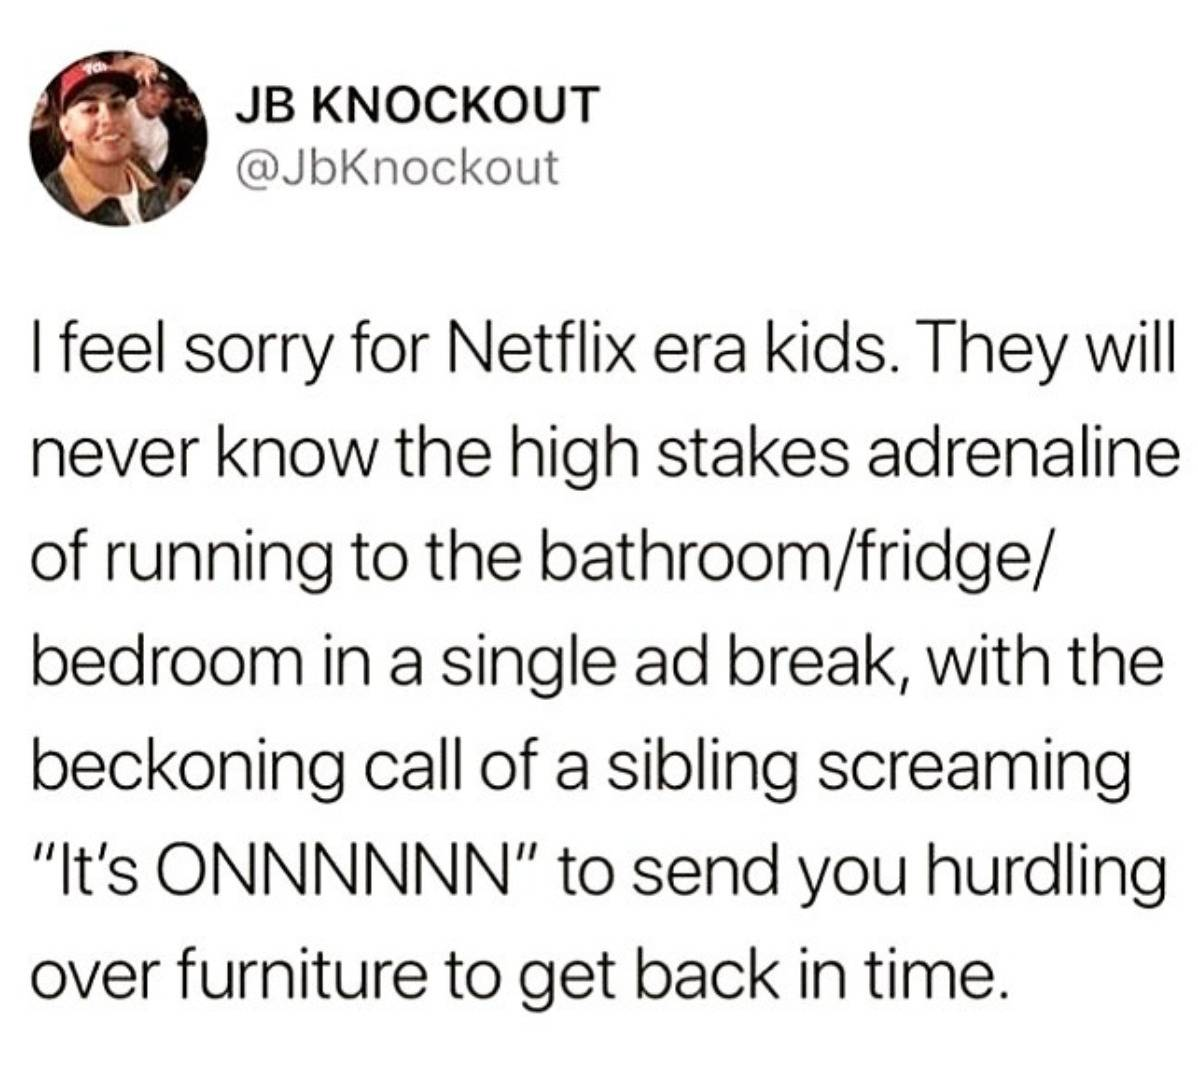 I feel sorry for Netflix era kids. They will never know the high stakes adrenaline of running to the bathroom/fridge/bedroom in a single ad break, with the beckoning call of a sibling screaming